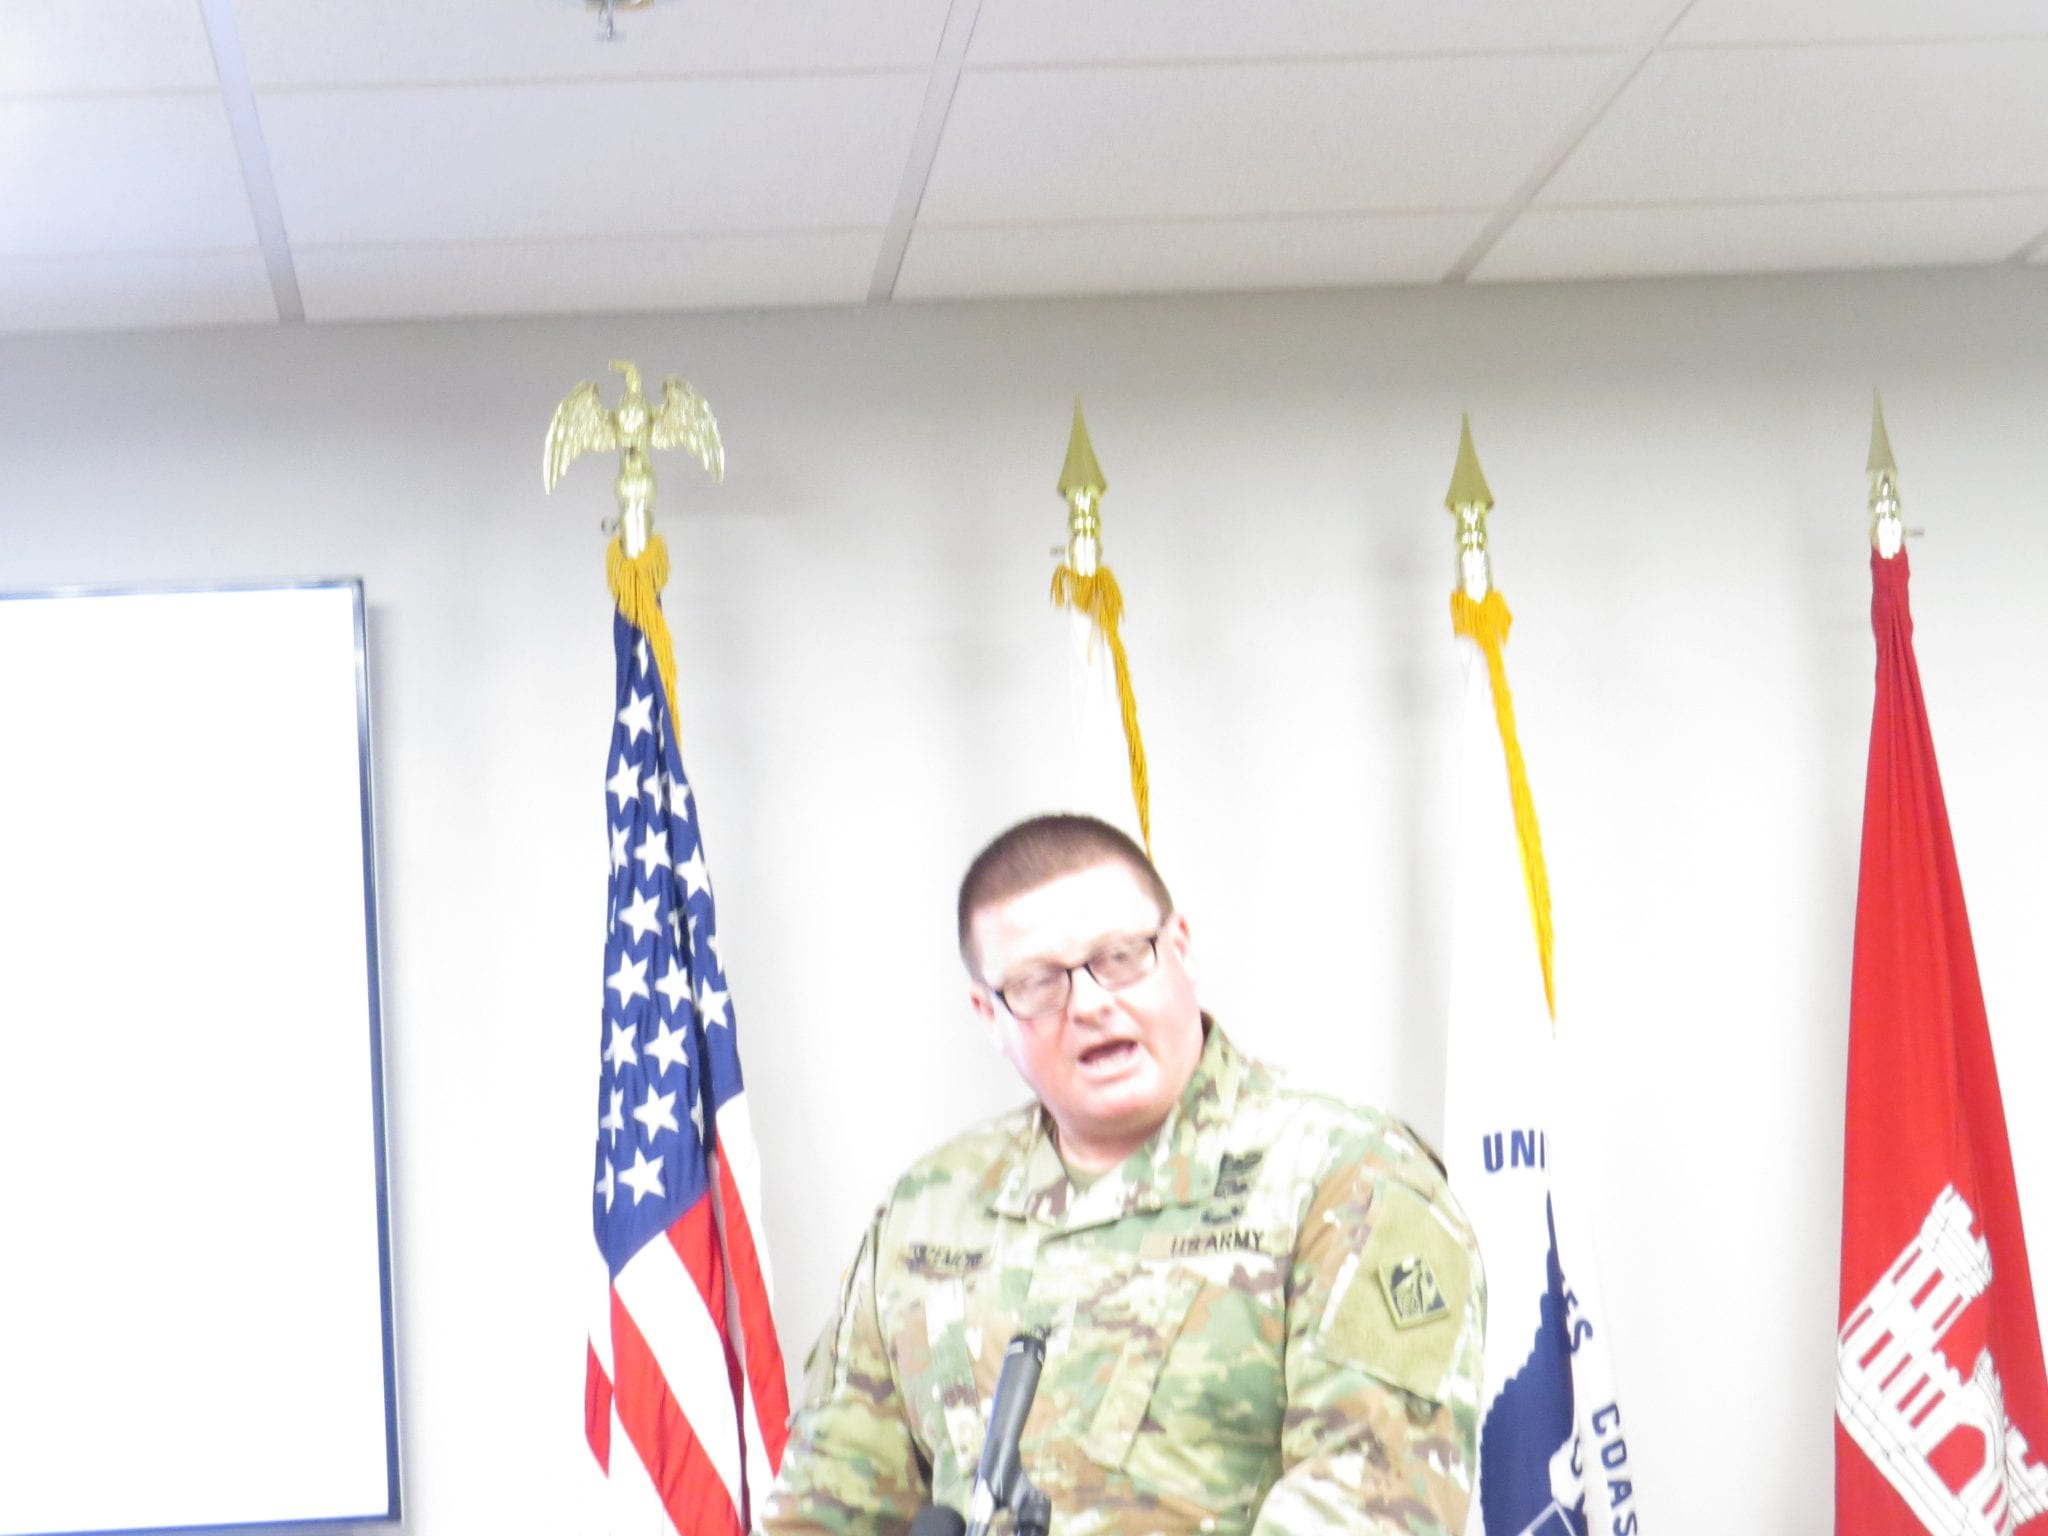 St. Louis Flood News: Army Corp of Engineers, U.S. Coast Guard says we're better prepared compared to Great Flood of 93